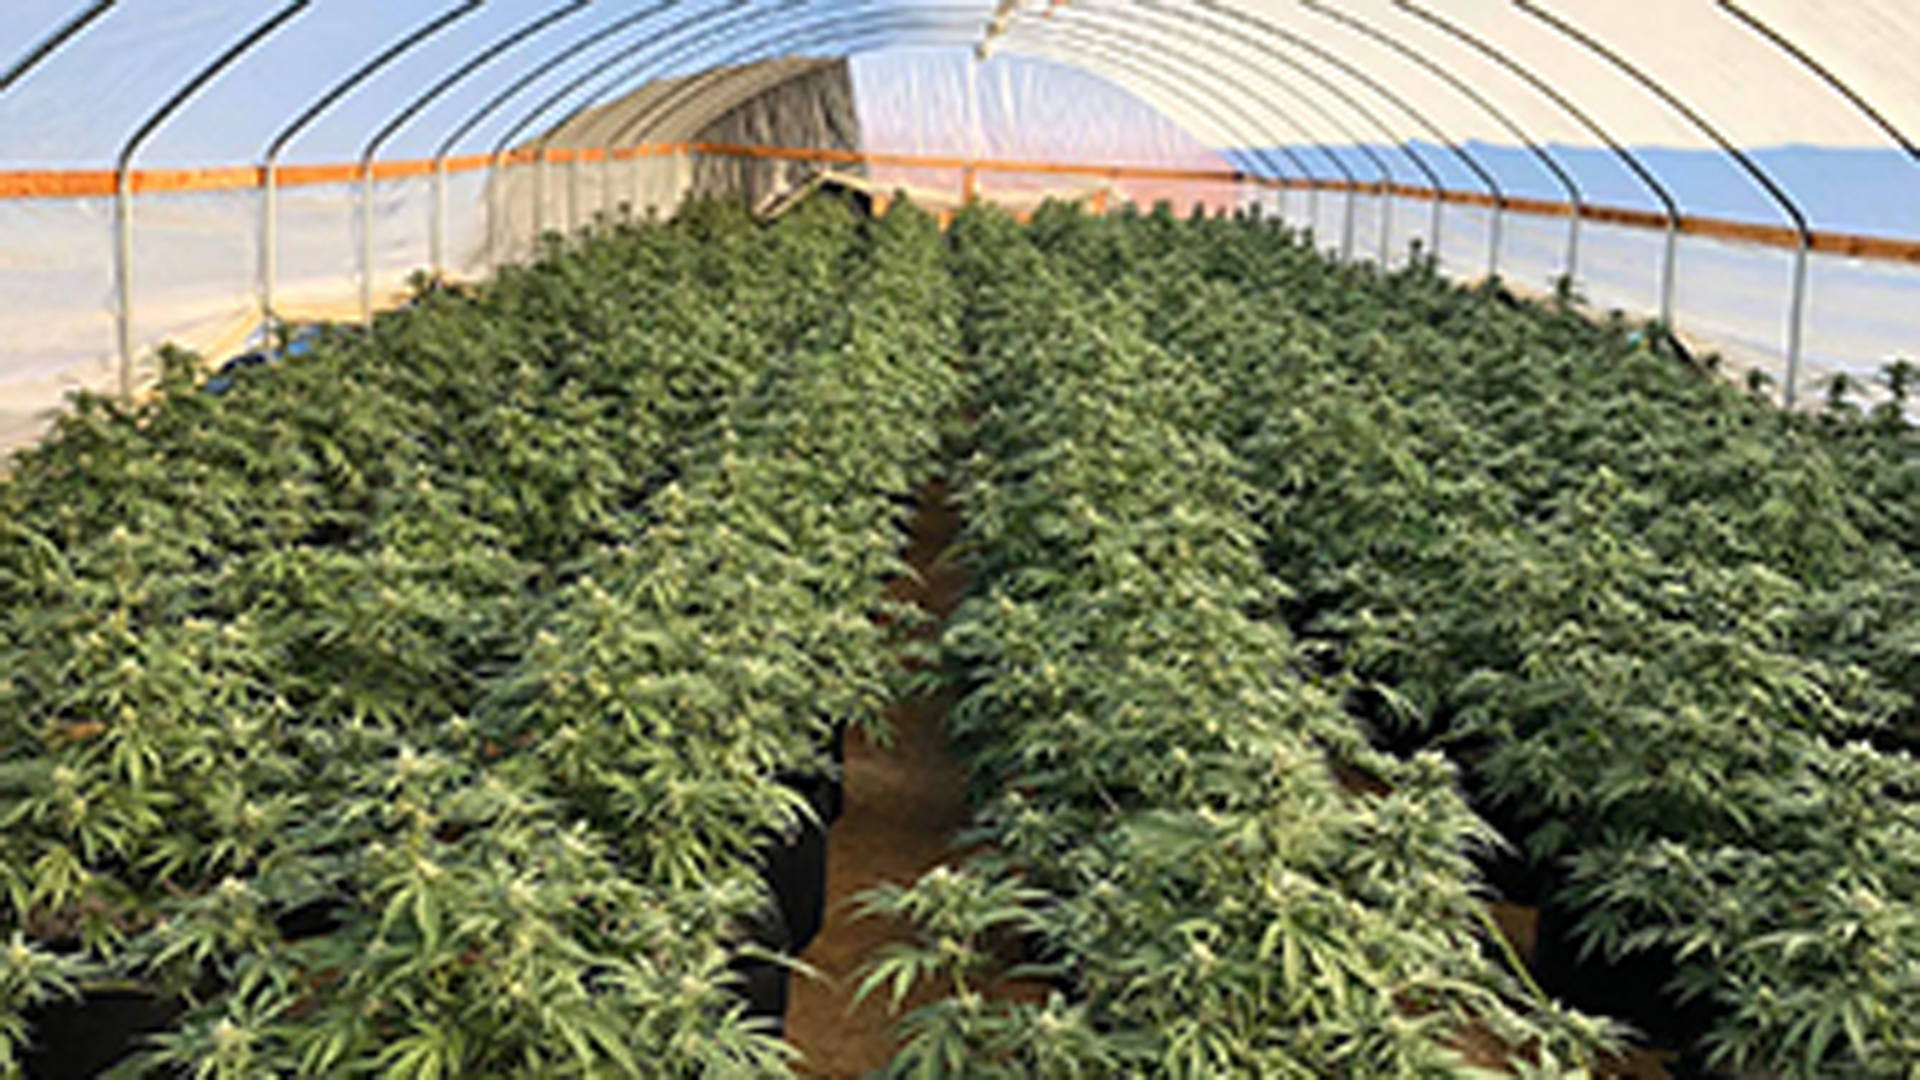 The Riverside County Sheriff's Department released this photo of some of the marijuana plants discovered in a raid on Oct. 7, 2019.